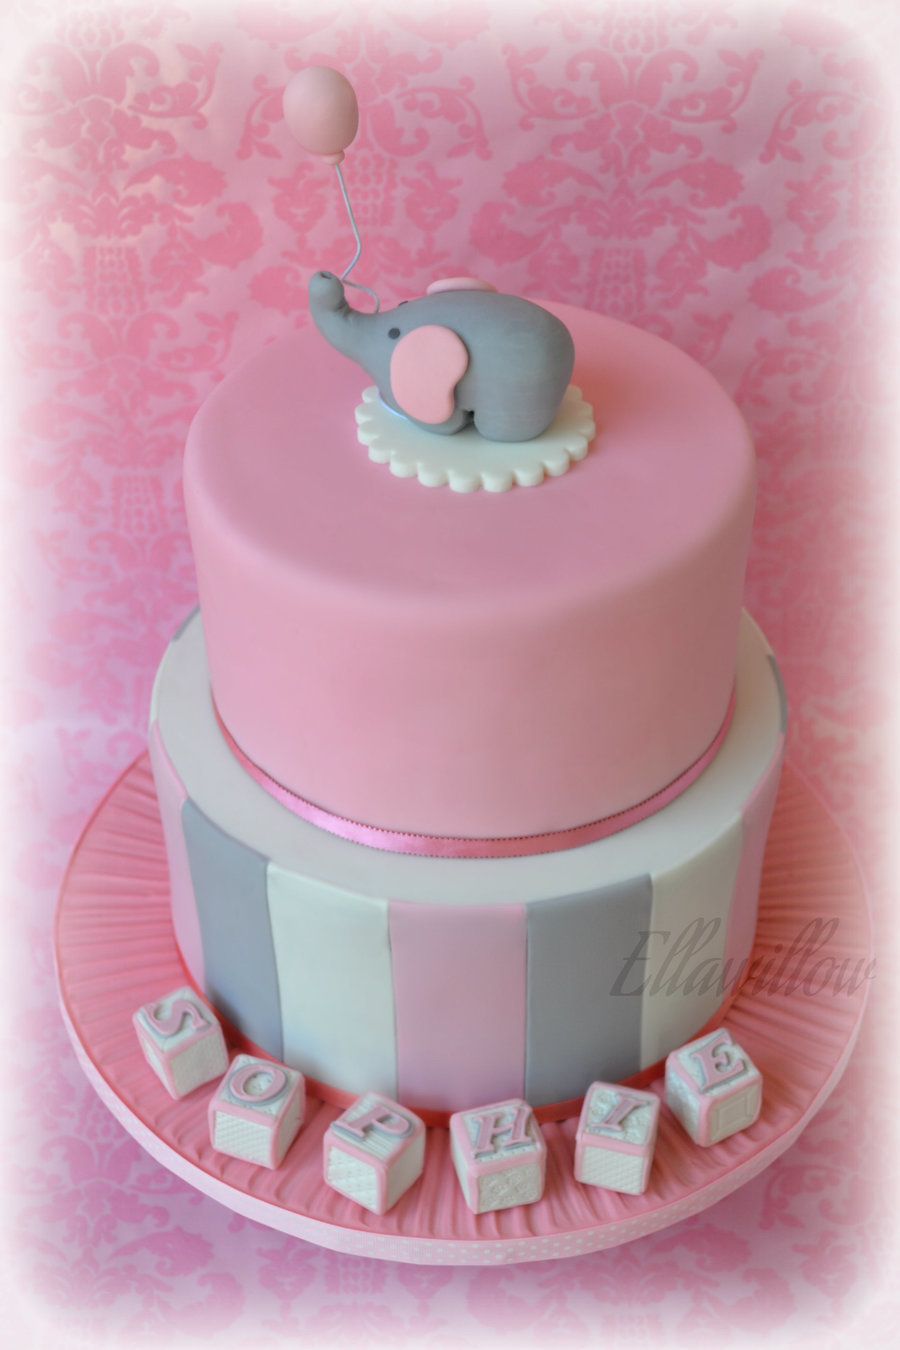 Agggggh Cake Central Still Have Not Created A Christening Cakes Section So Once Again I Will Put This Cake Under Baby Showers Two Tier  on Cake Central